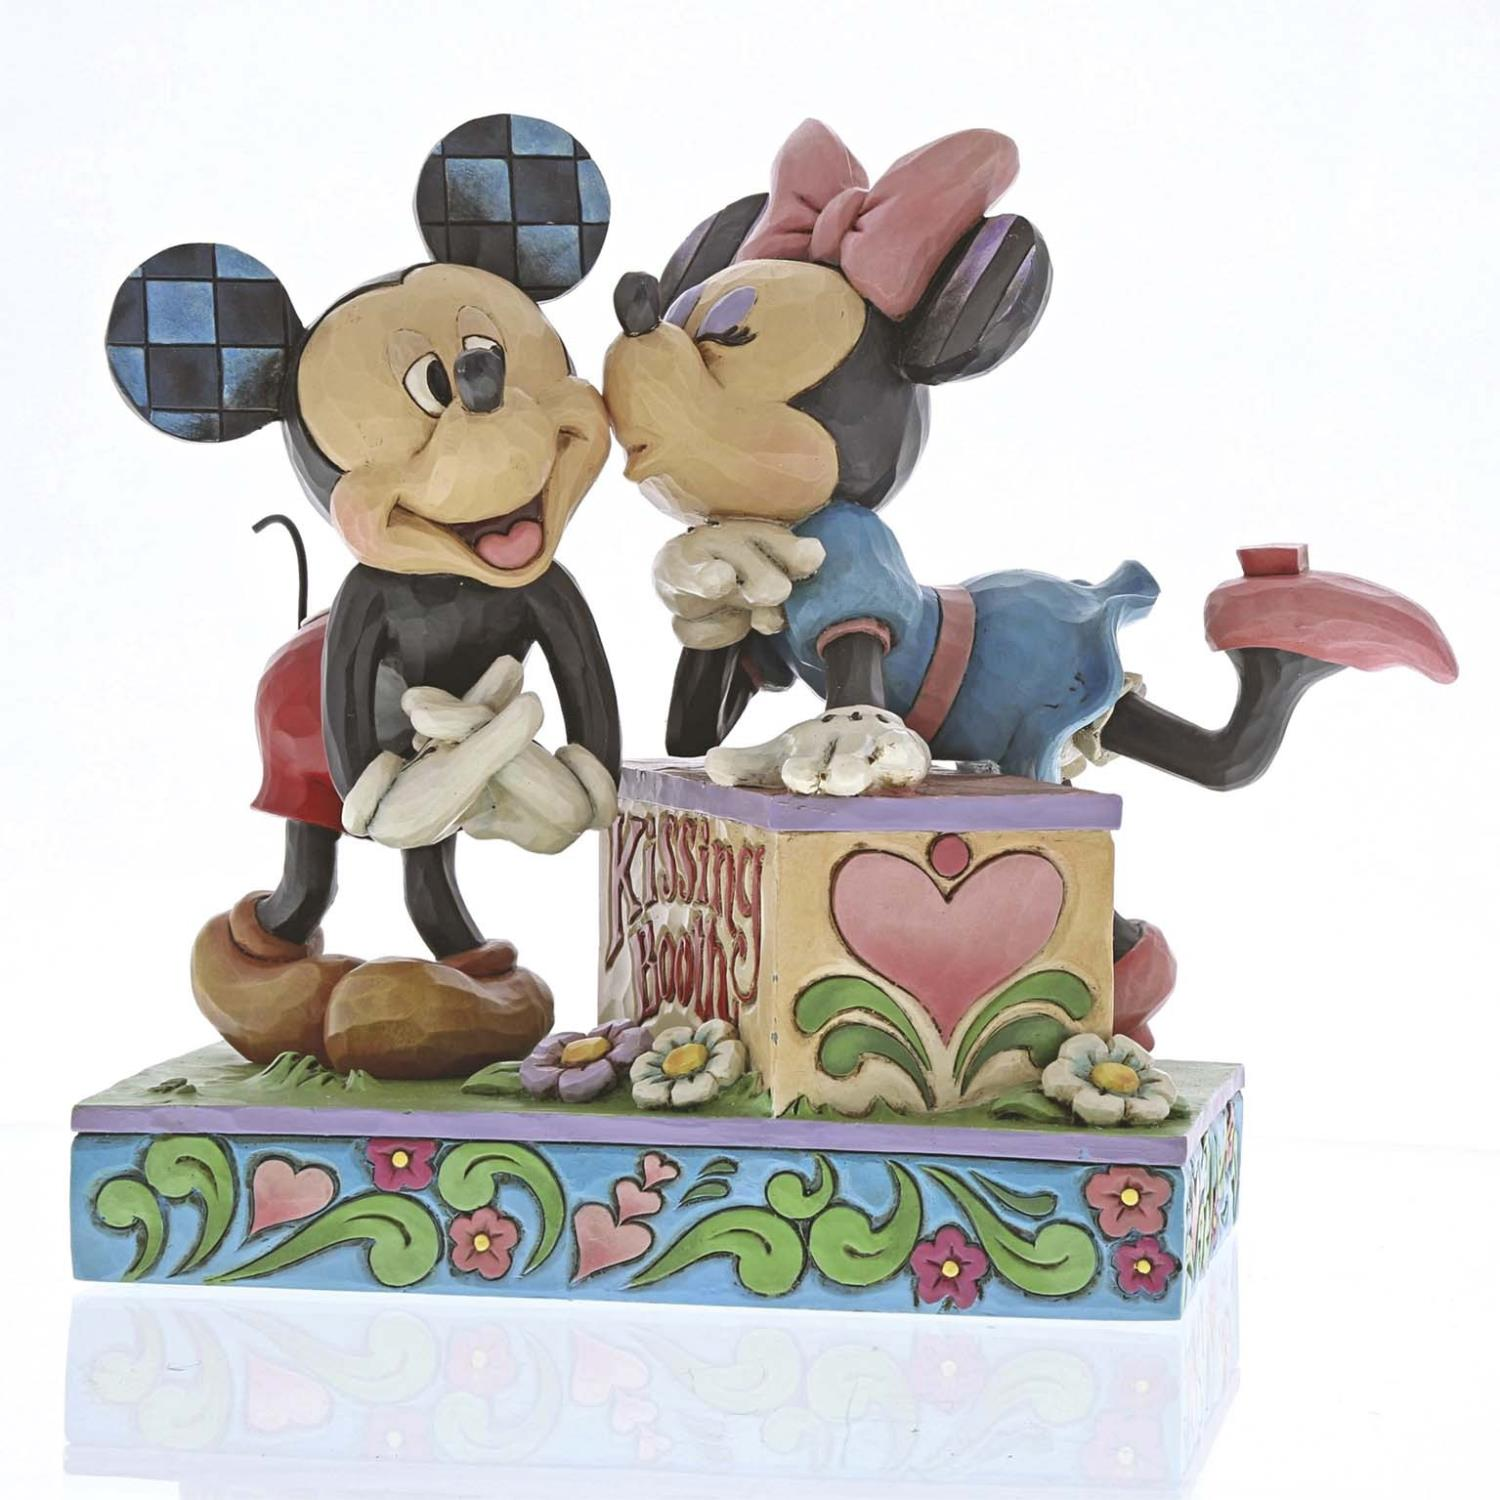 Kissing Booth Mickey & Minnie